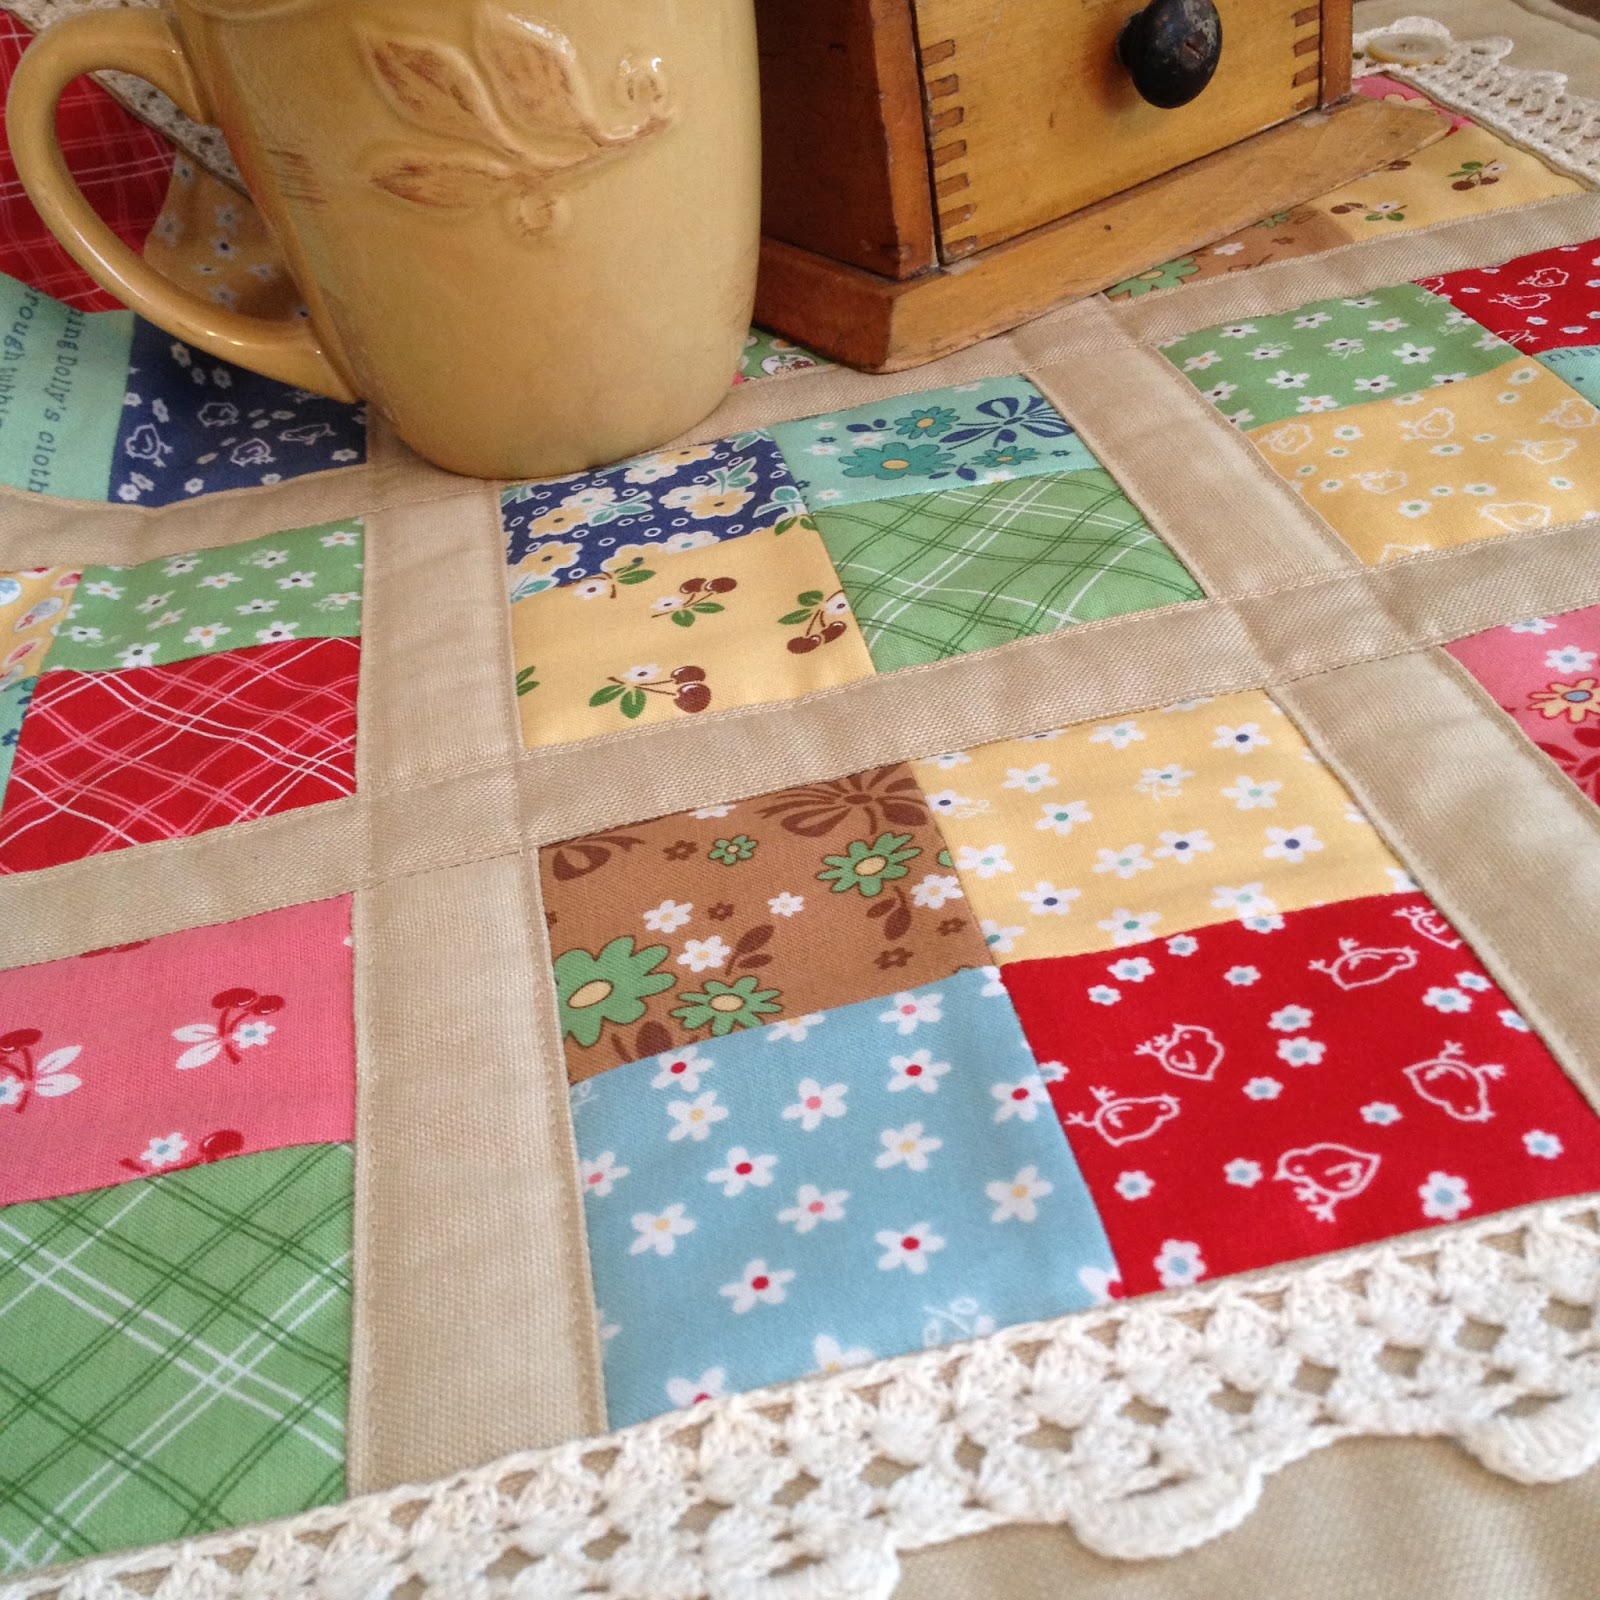 Carried Away Quilting: Coffee time quilt: Why simple is good! : quilts n calicoes - Adamdwight.com